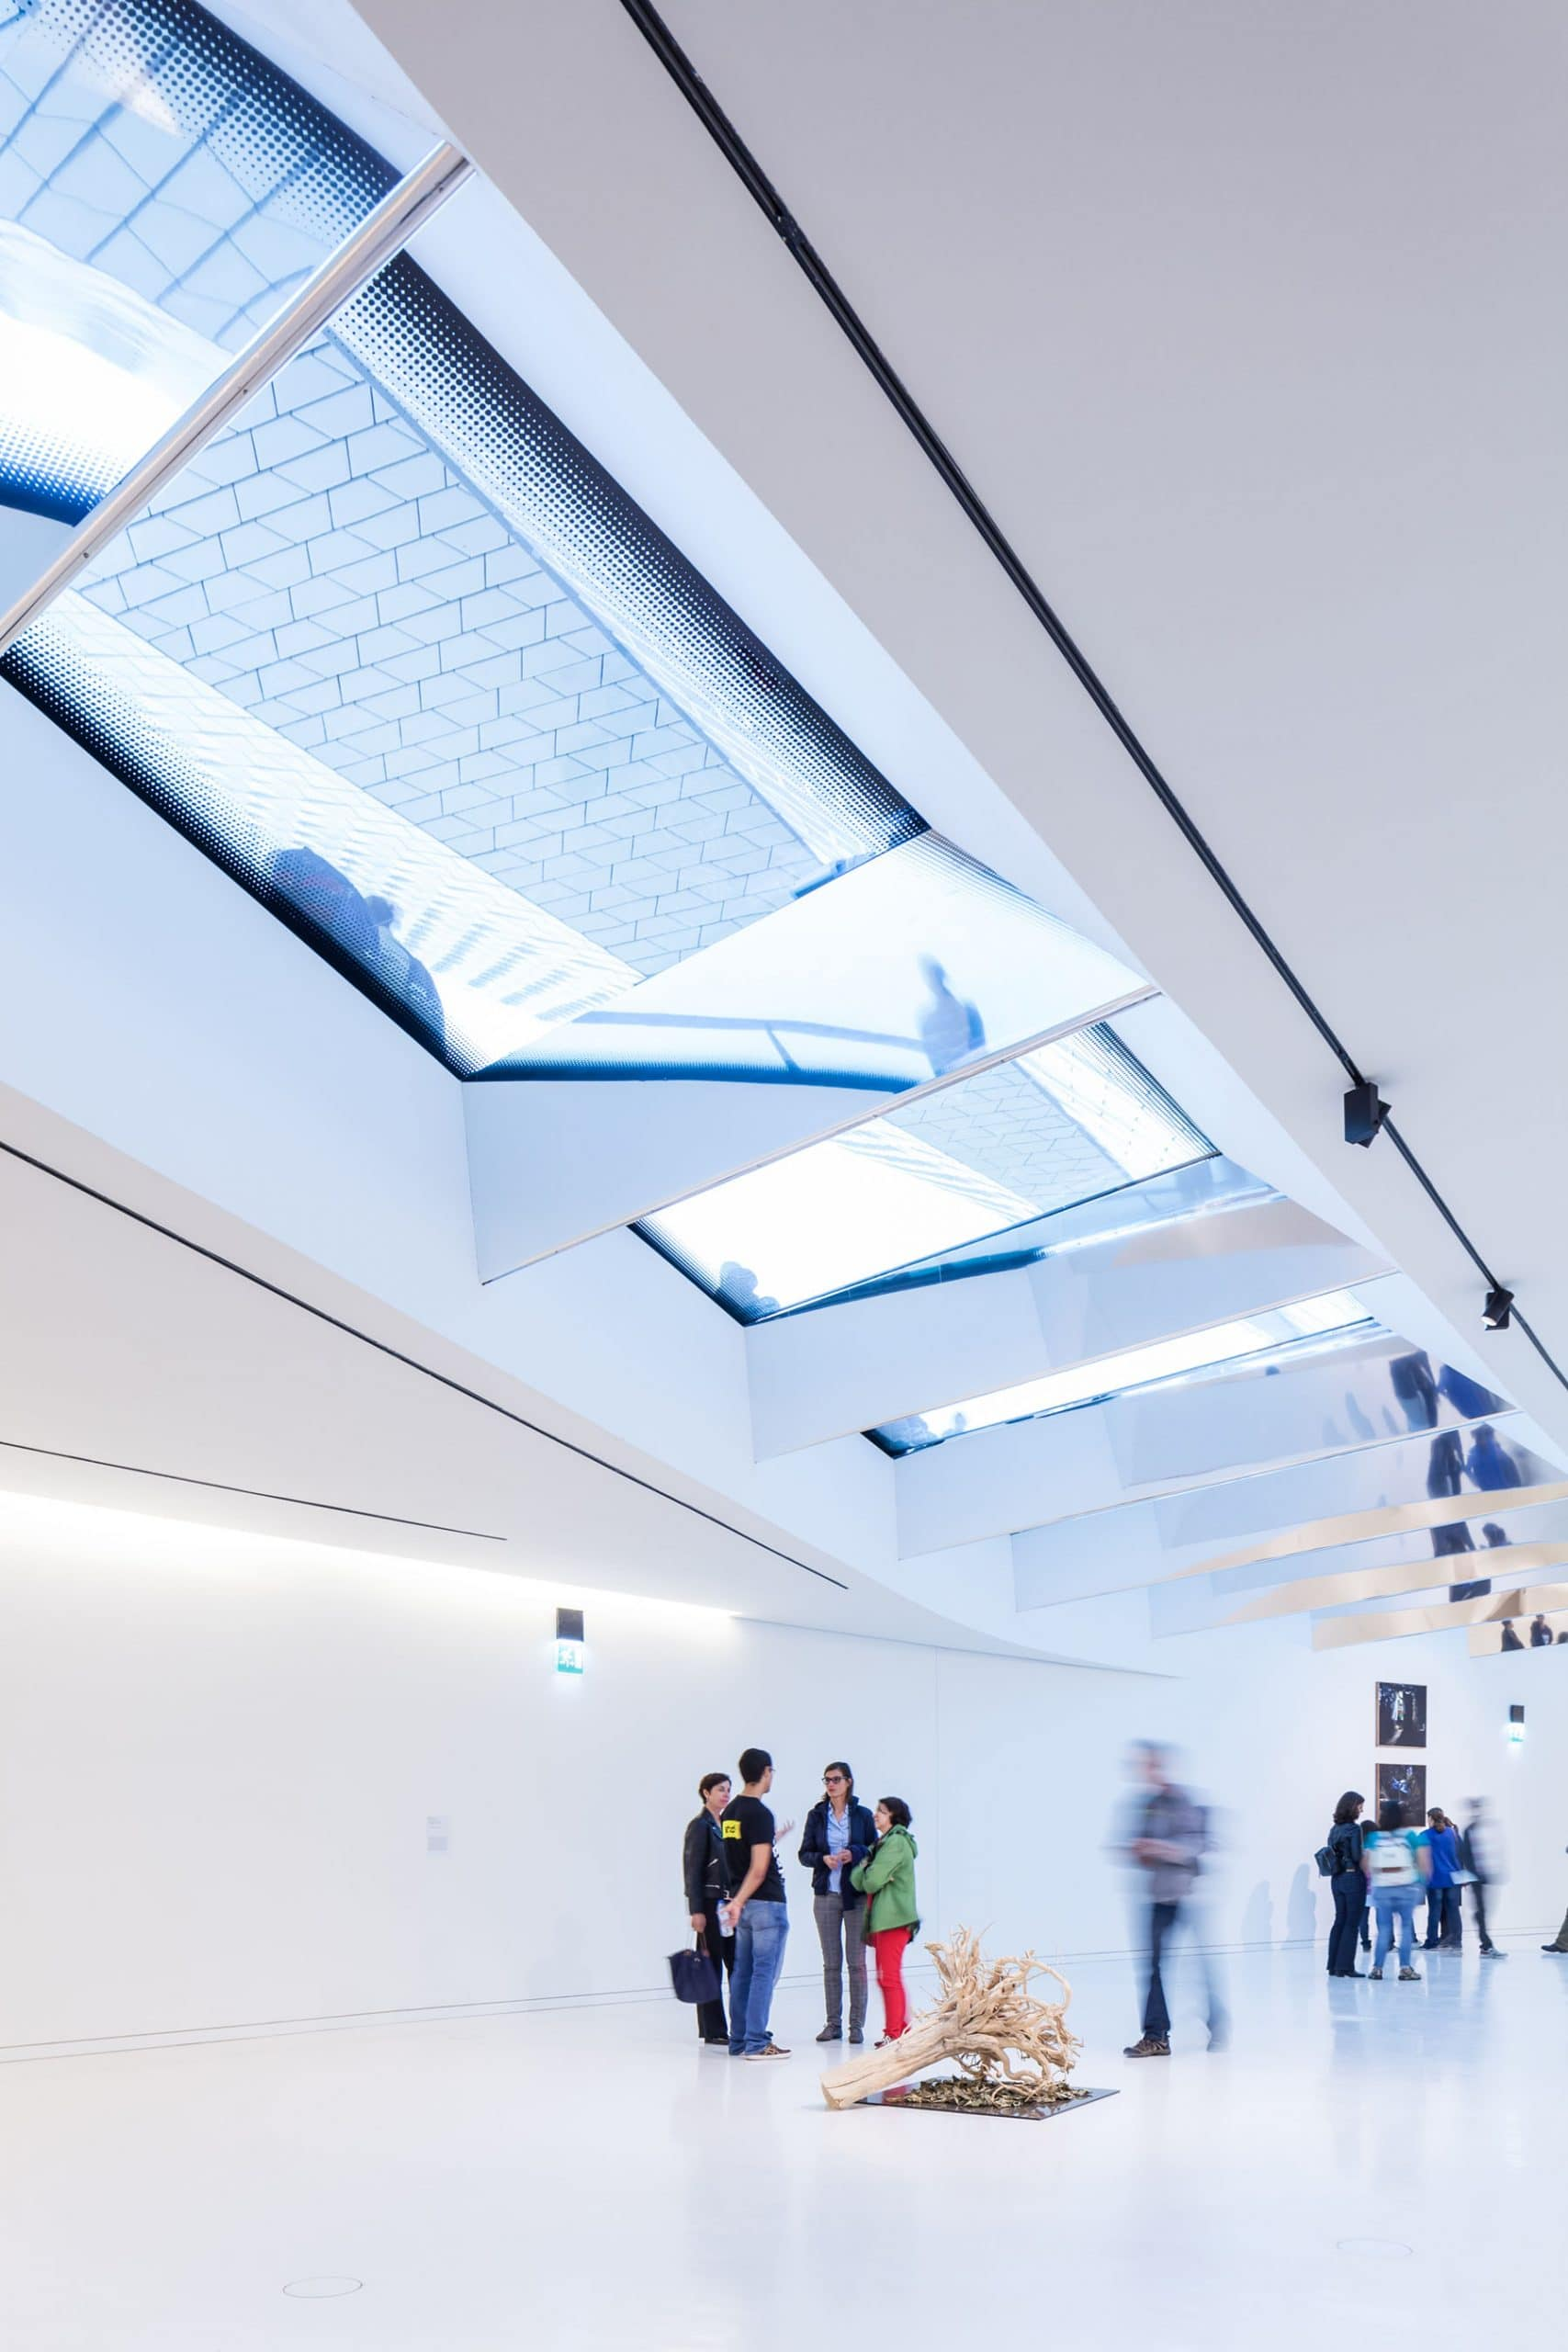 Modern MAAT museum exhibition with structural glass roof